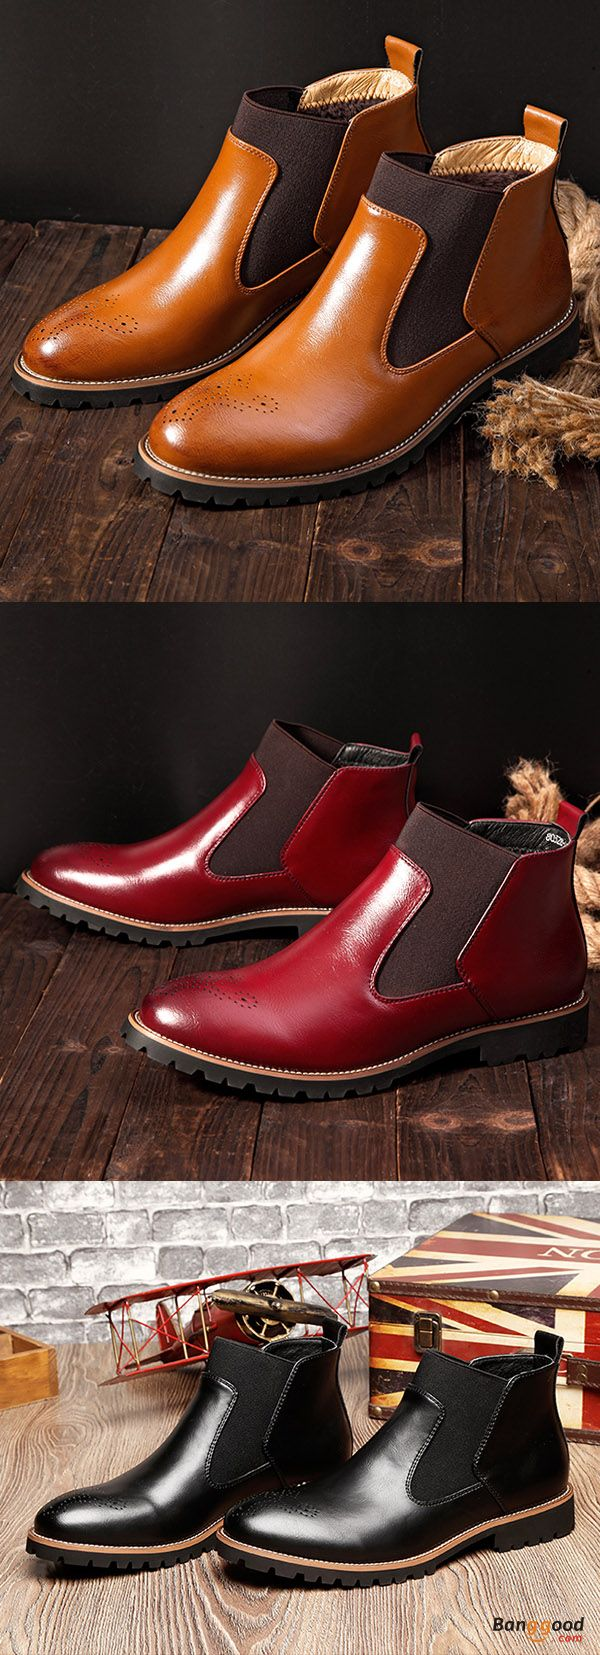 cole haan shoes brown for jeans malesef 698780